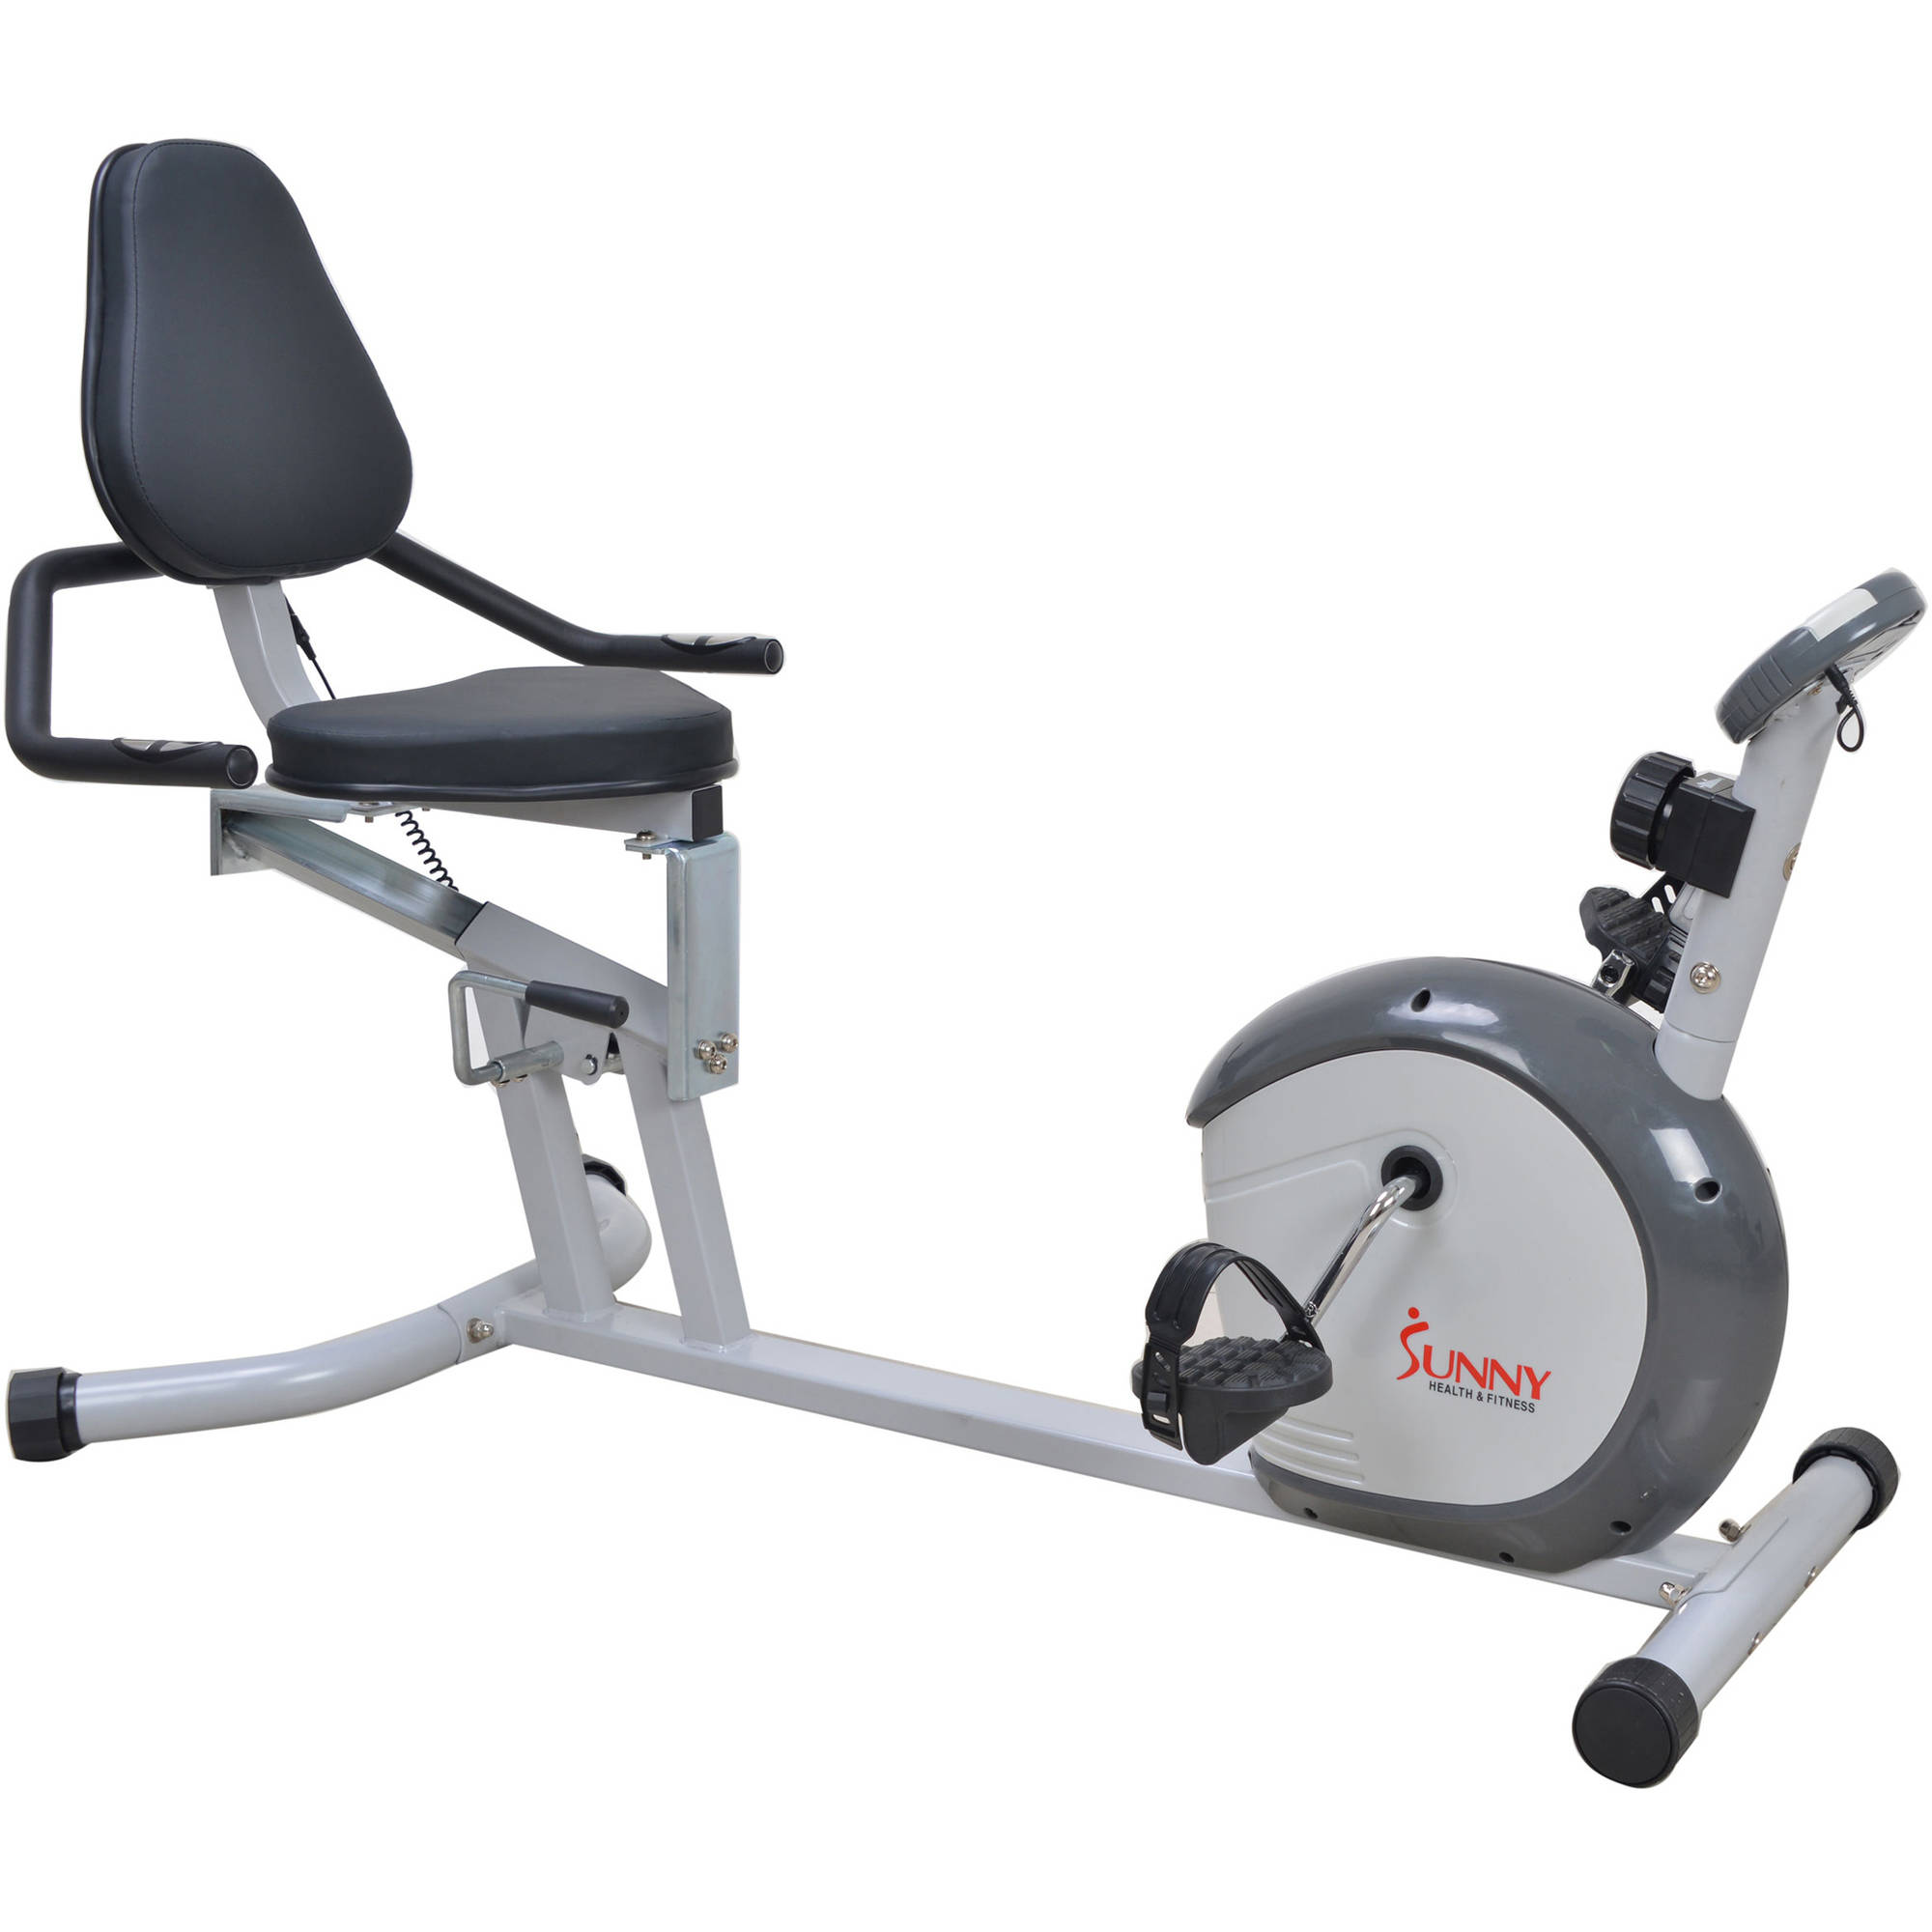 300lb Capacity Recumbent Bike Exercise Bike w  LCD Monitor and Pulse Rate Monitoring by Sunny Health & Fitness... by Sunny Distributor Inc